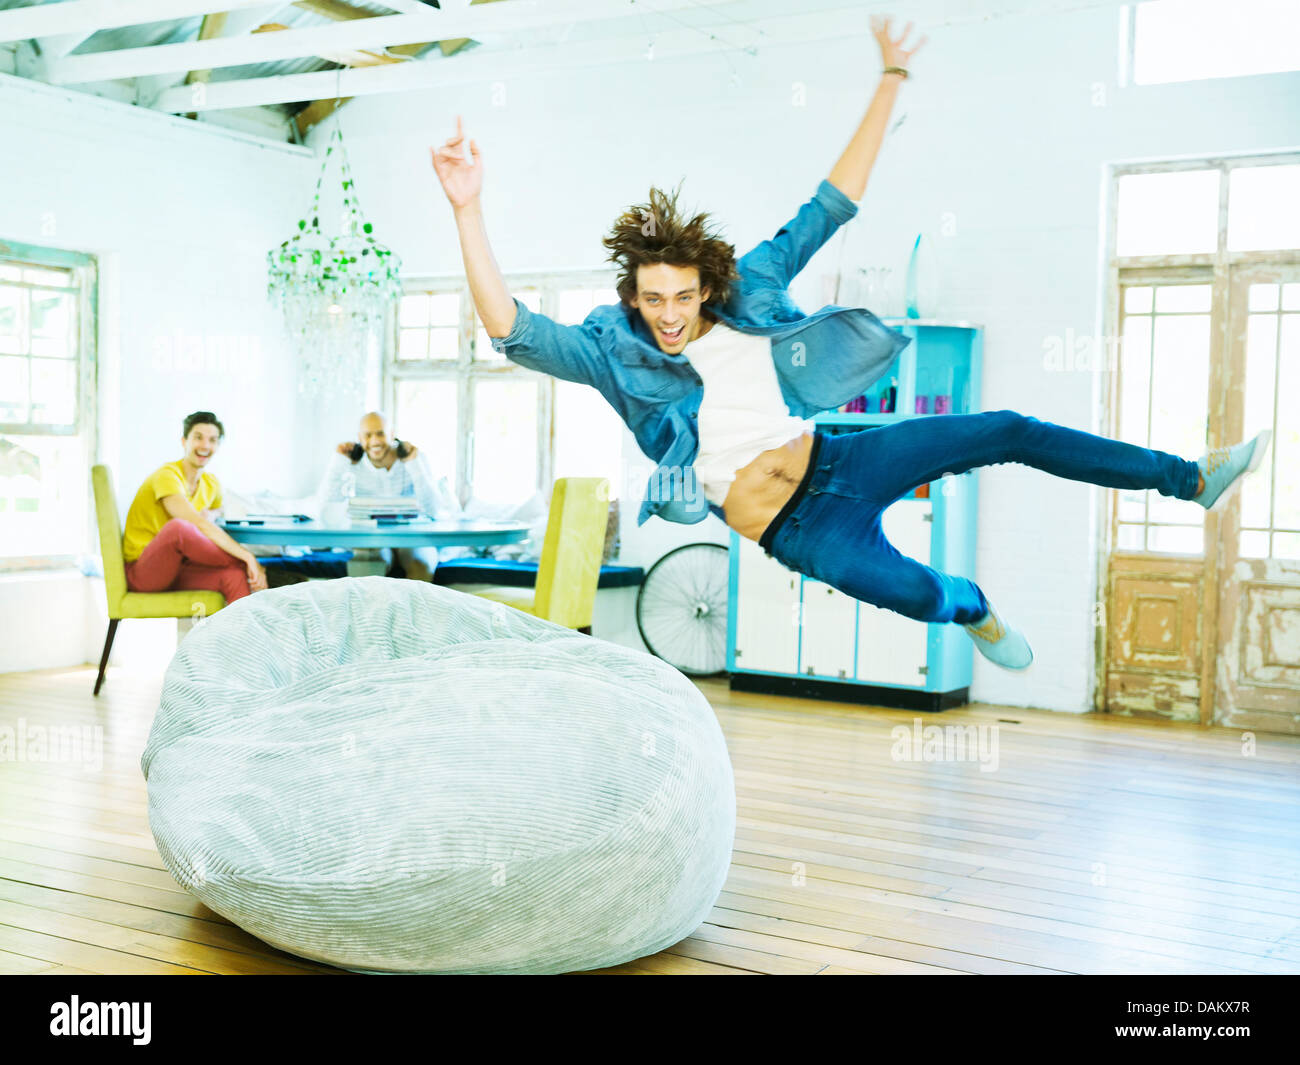 Man jumping into beanbag chair - Stock Image